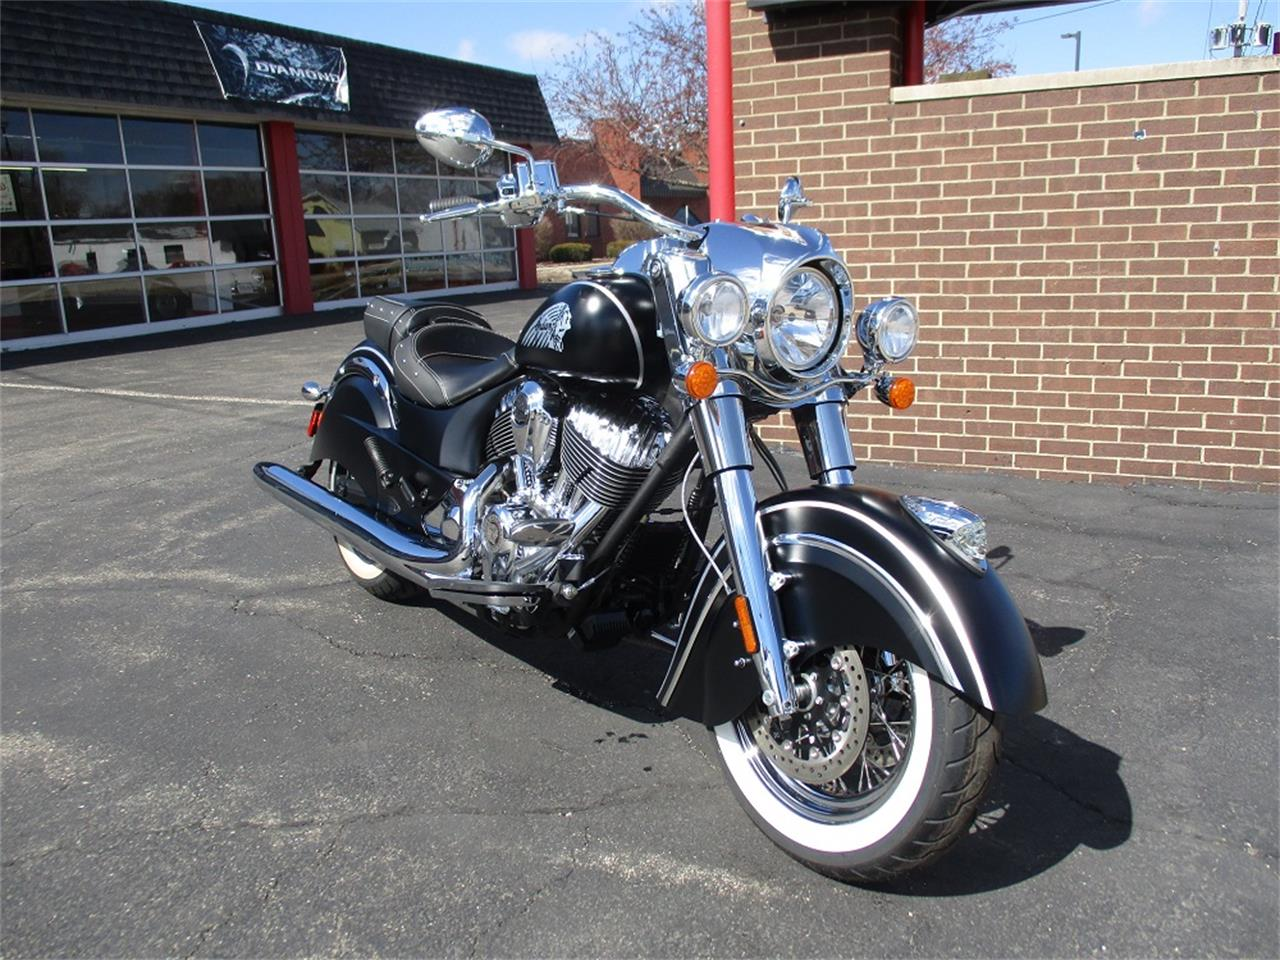 2015 Indian Chief (CC-1199335) for sale in Sterling, Illinois